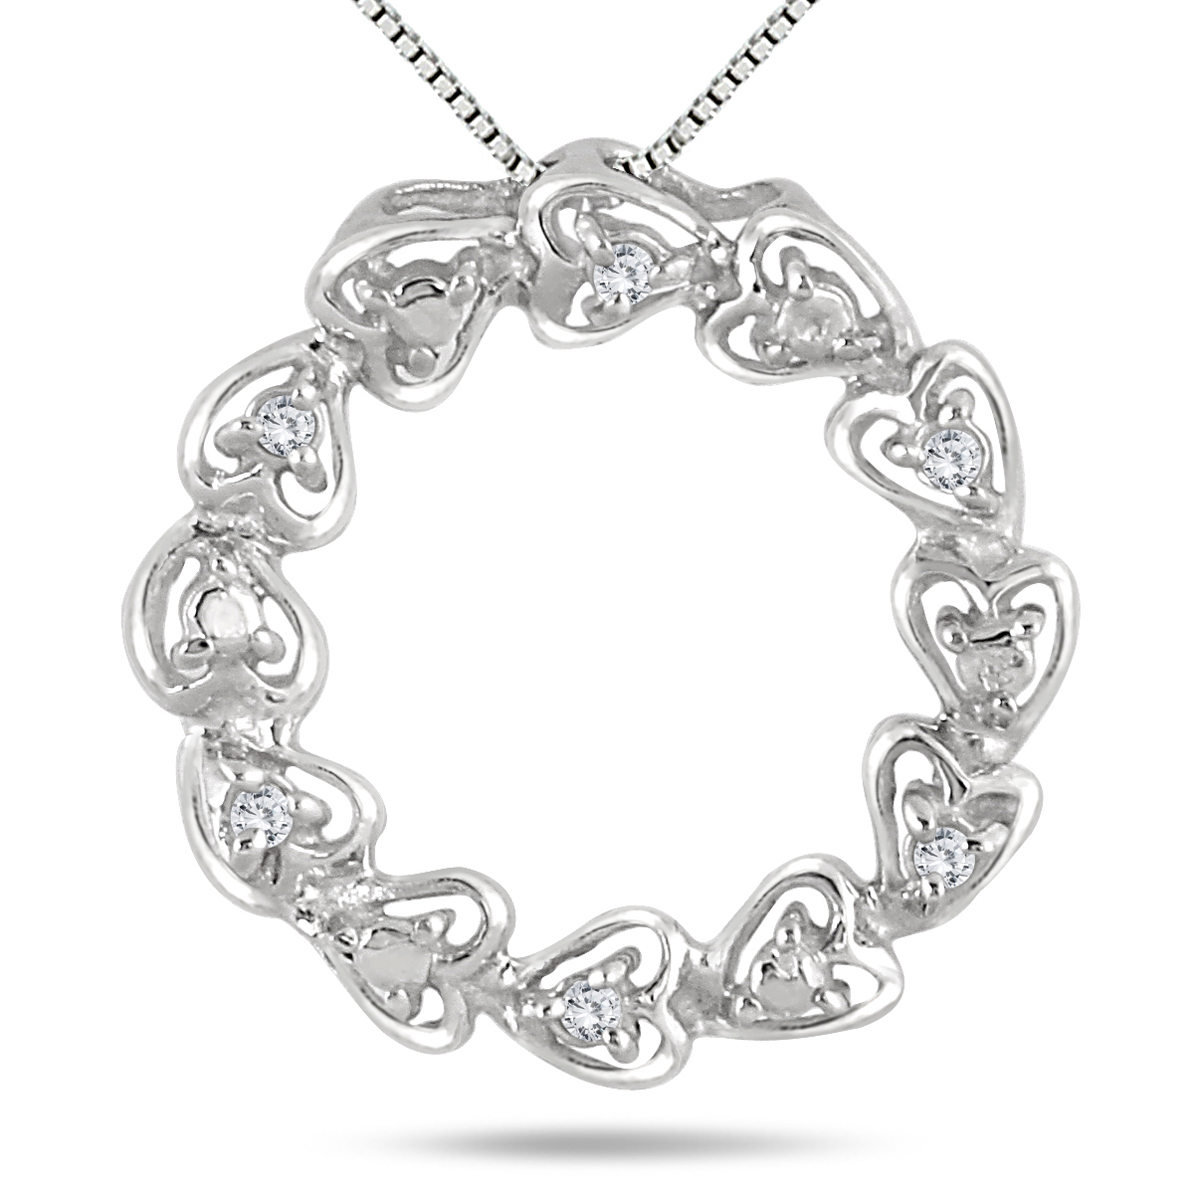 1/10 Carat Diamond Circle Heart Pendant